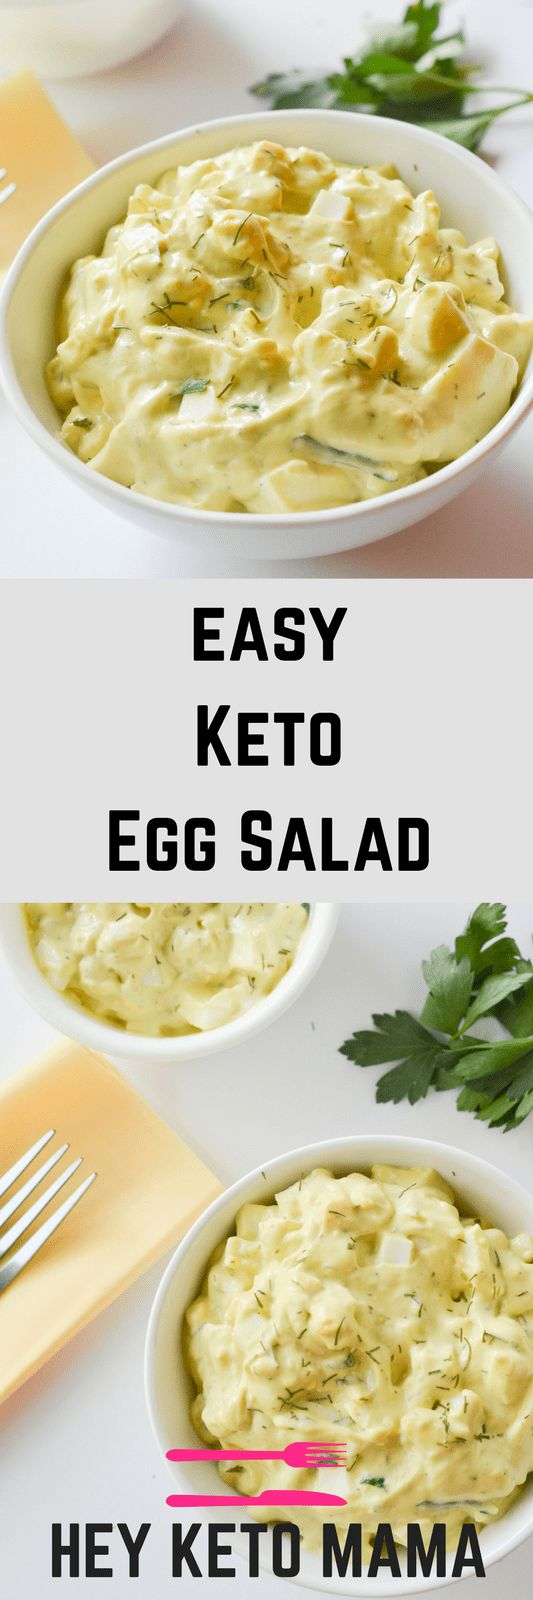 This easy keto egg salad is a quick and healthy low carb lunch with plenty of protein and delicious flavor! | heyketomama.com